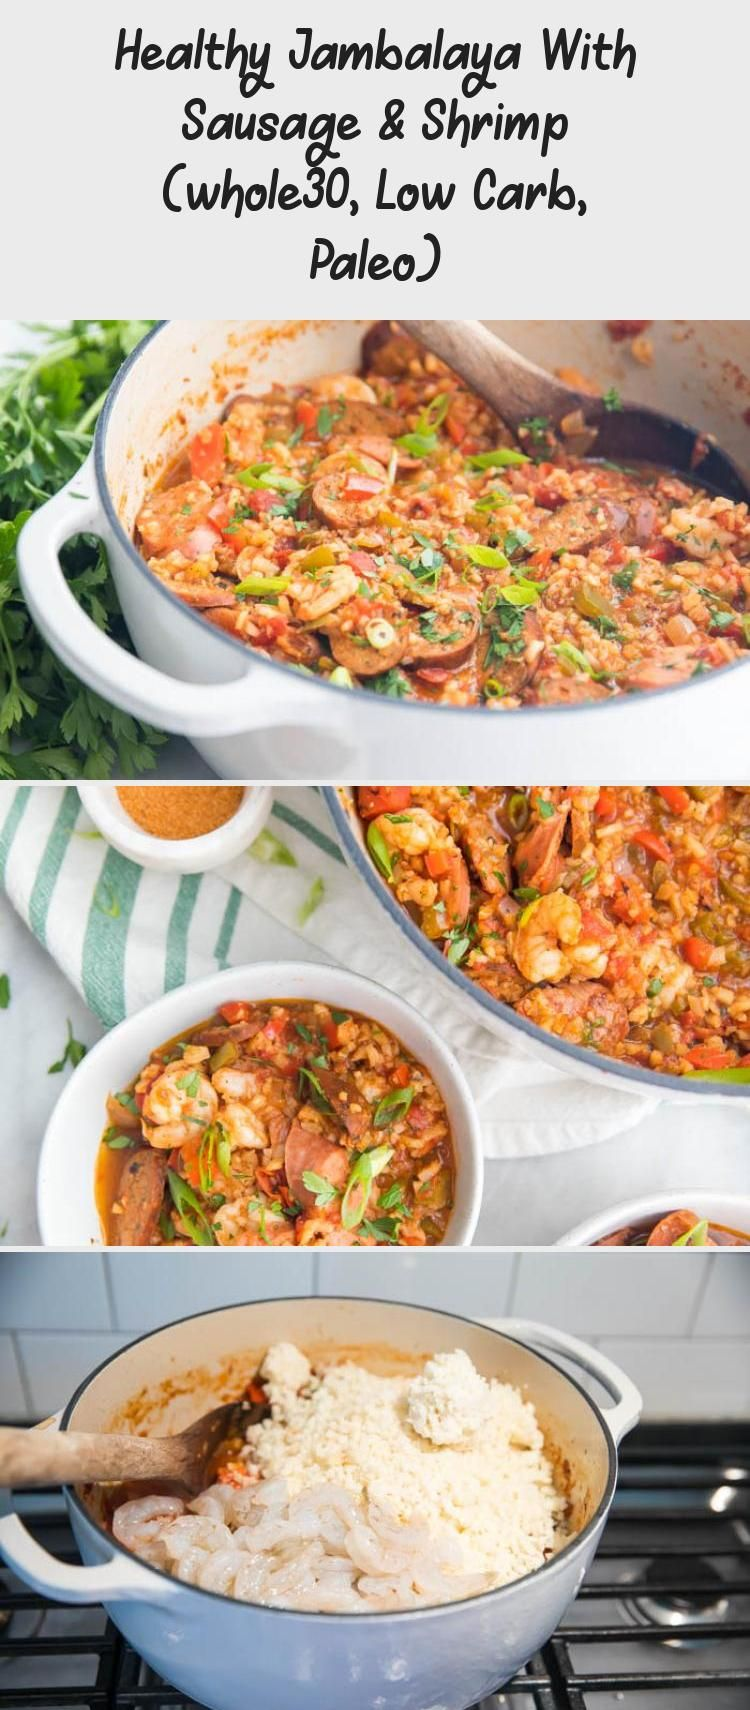 Healthy Jambalaya With Sausage & Shrimp (whole30, Low Carb, Paleo) This healthy jambalaya recipe is a Whole30 and low carb version of an authentic Cajun dish. With sausage and shrimp, this paleo Creole recipe is even keto friendly, thanks to cauliflower rice! Surprisingly easy, too, and it comes together in a little less than an hour.